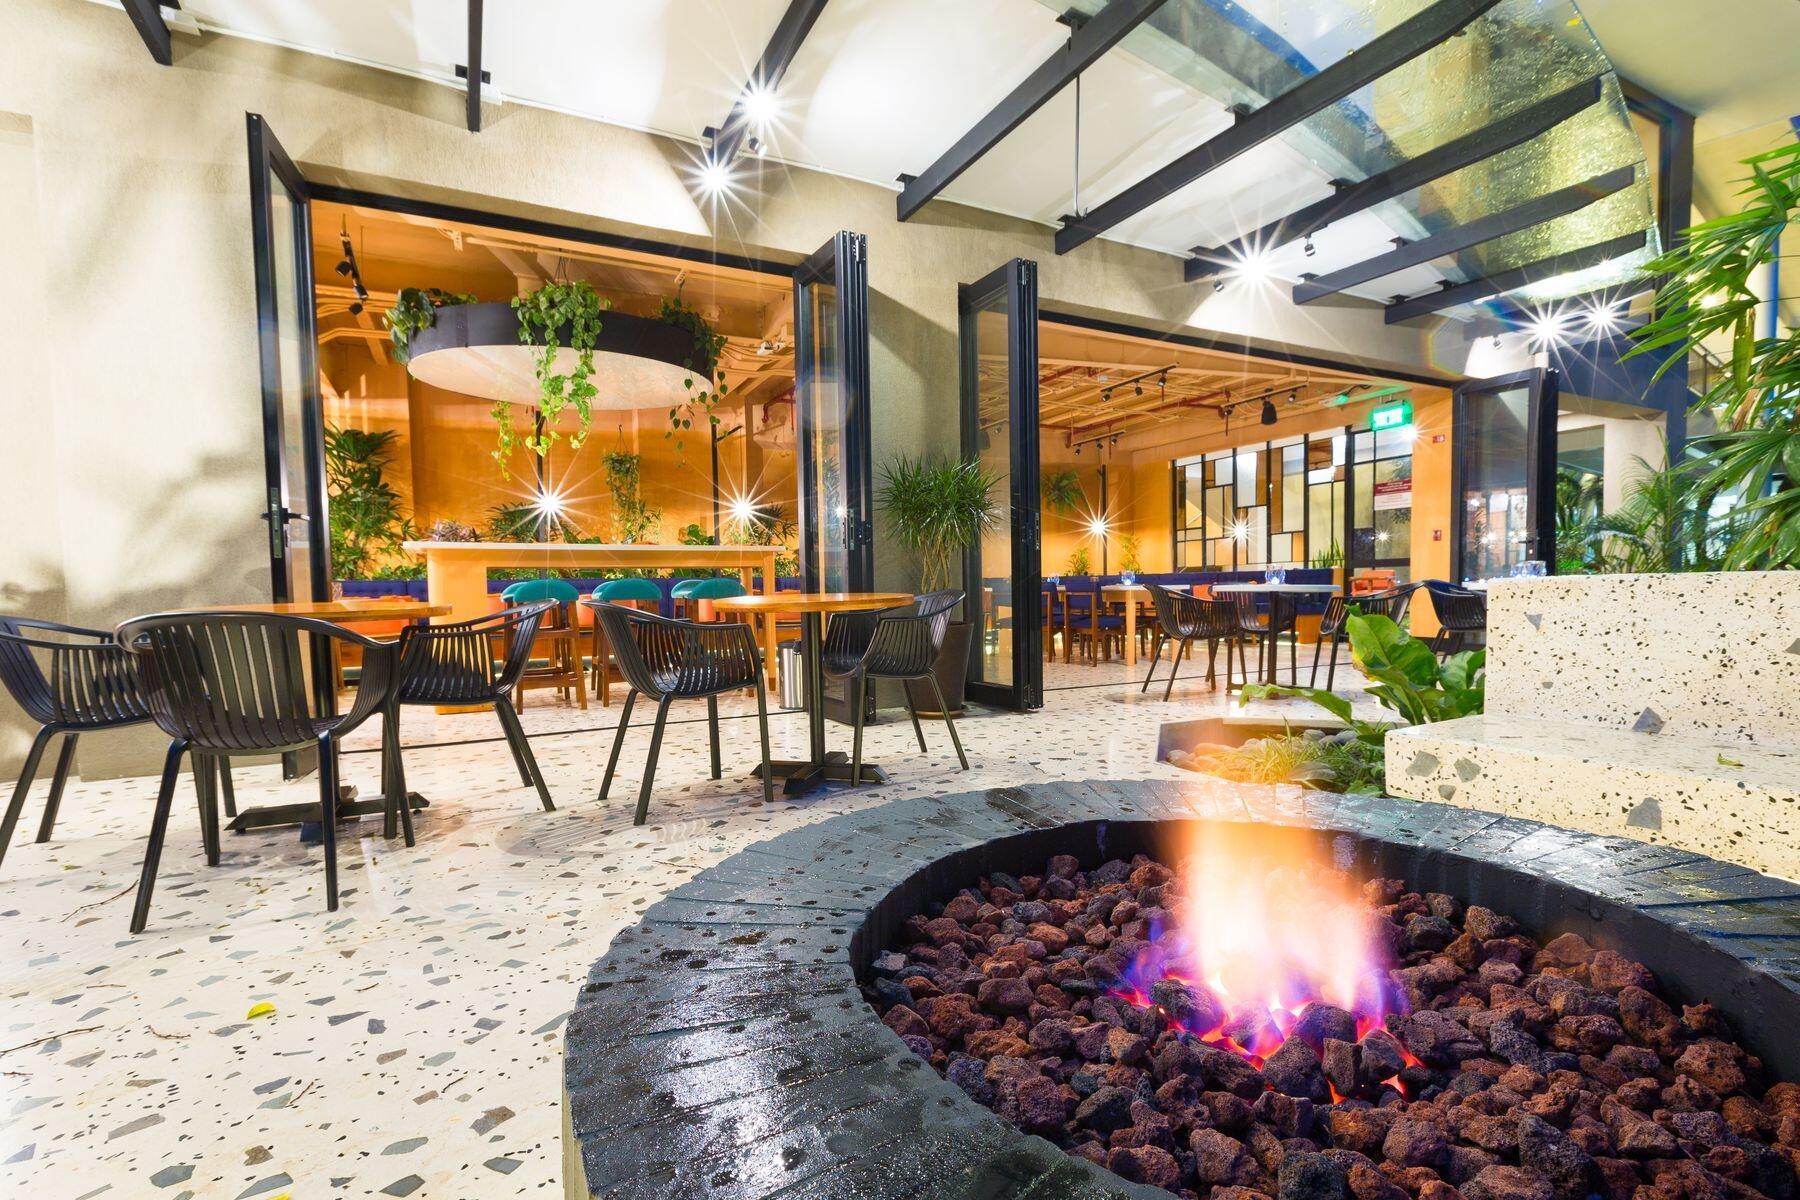 Outdoor fire pit and bistro tables at hotel lounge